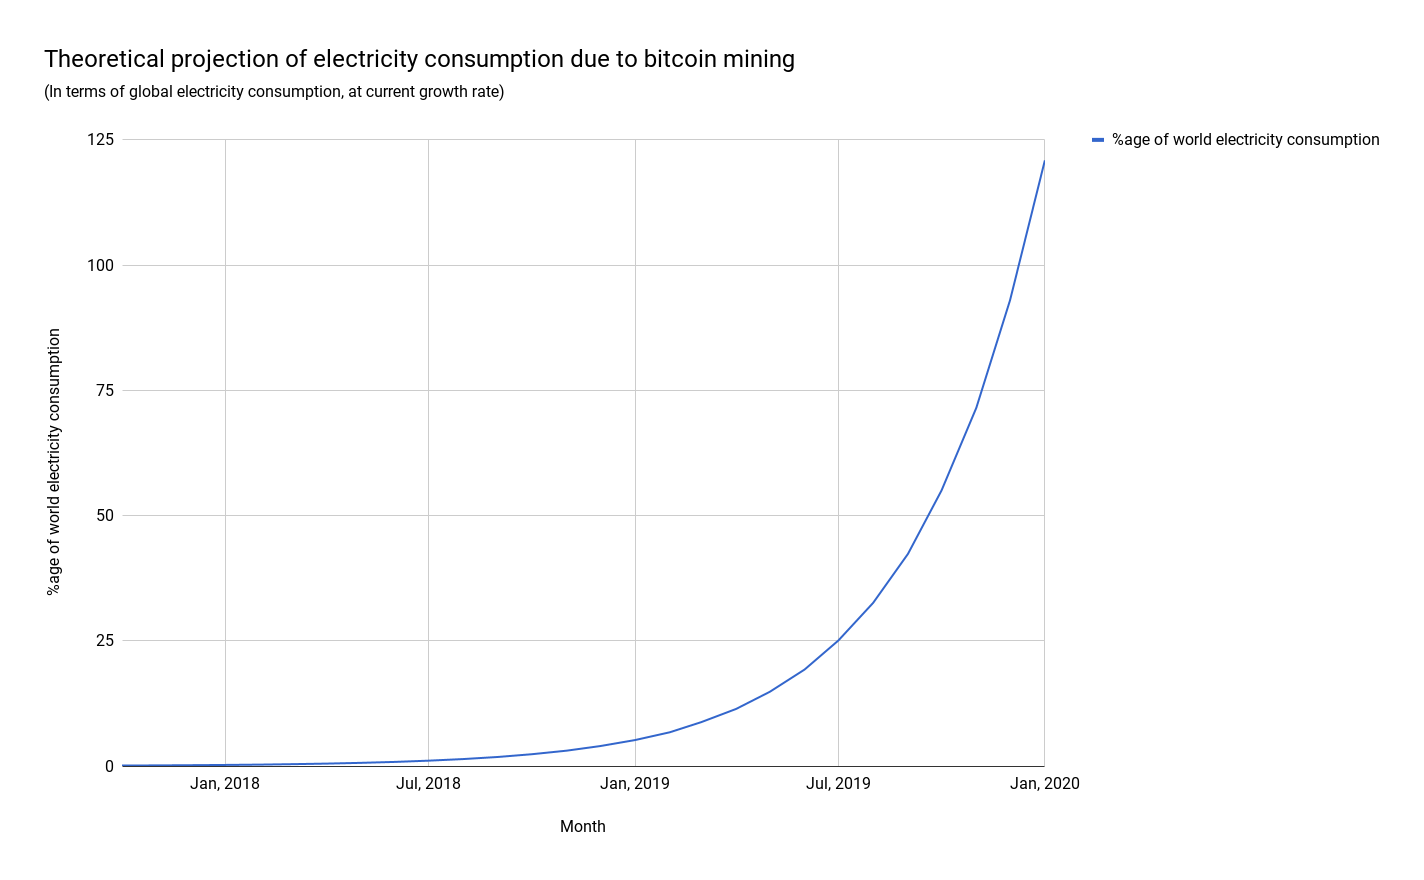 Projection of electricity consumption due to bitcoin mining